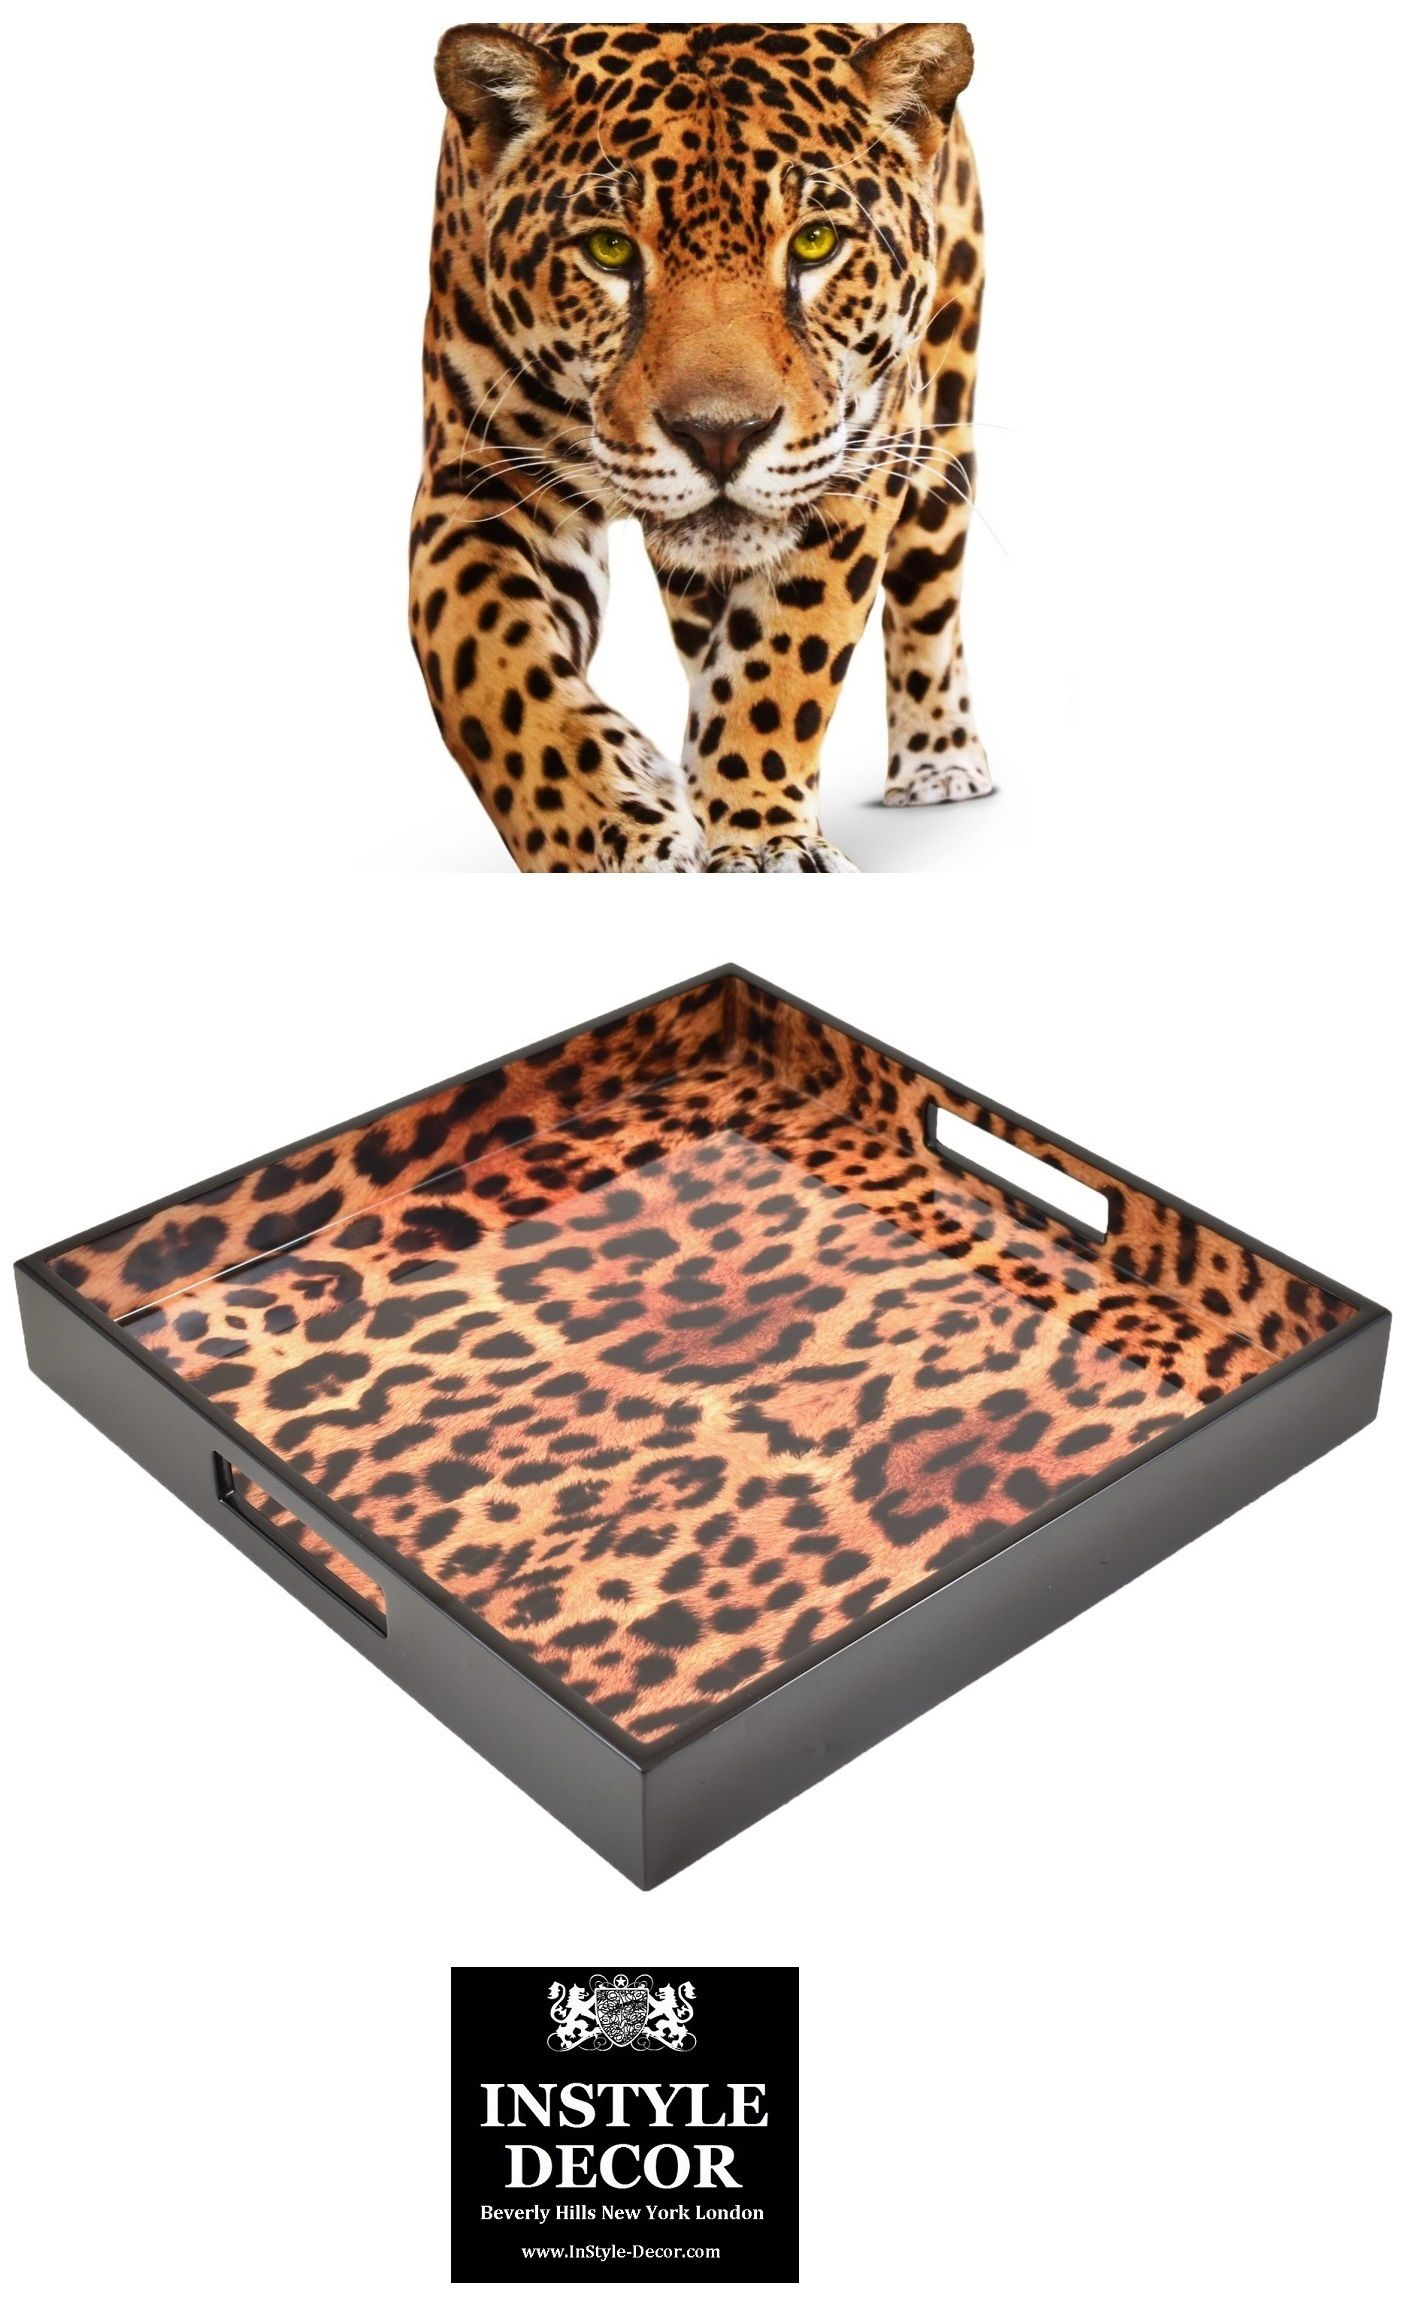 Cheetah Tray Cheetah Trays Leopard Tray Leopard Trays Jaguar